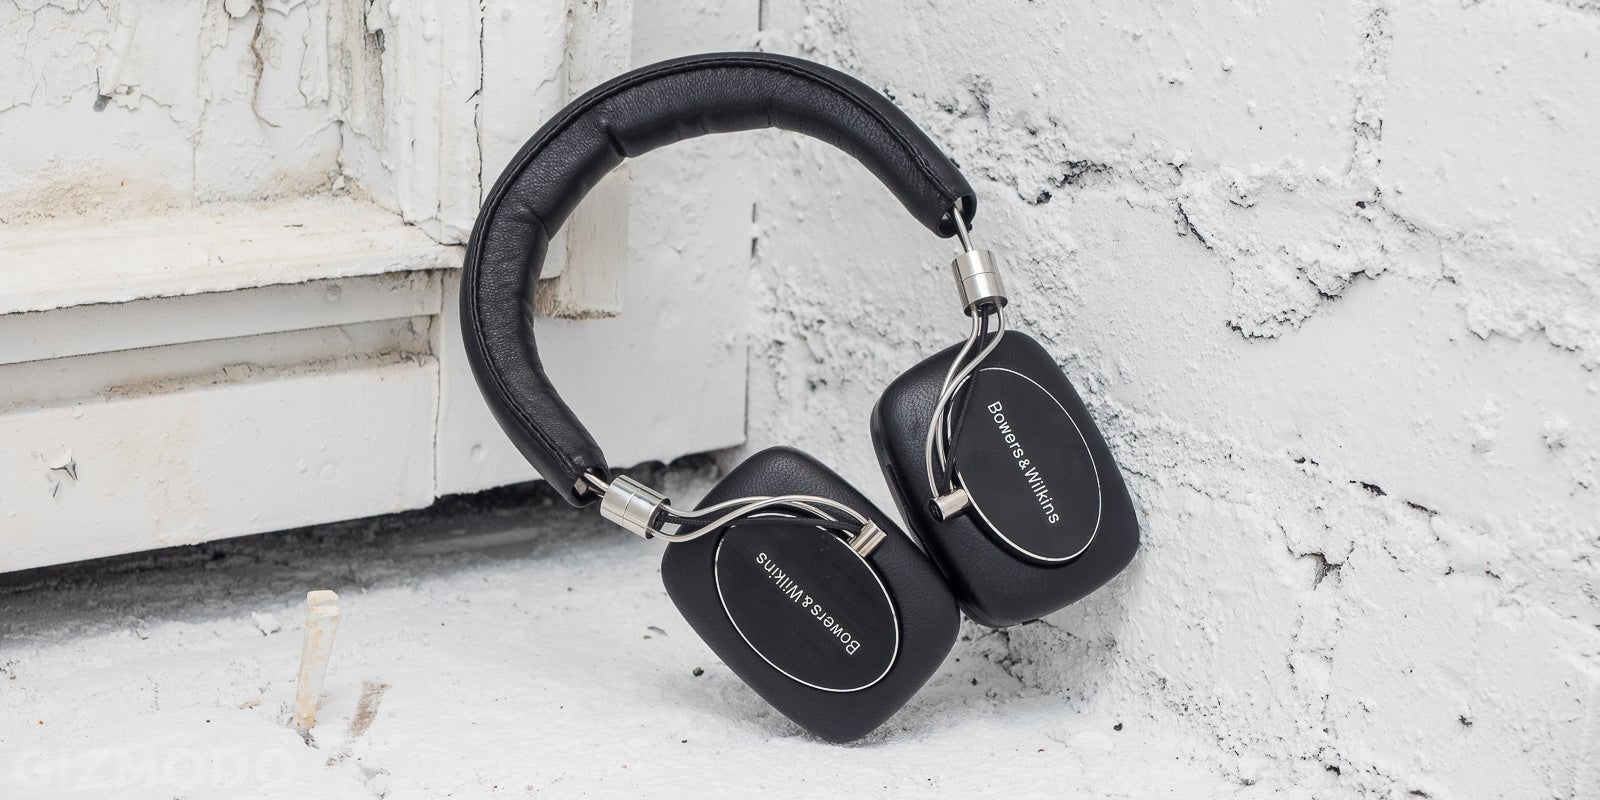 Bowers & Wilkins' First Wireless Headphones Are Brilliant -- Except for One Thing